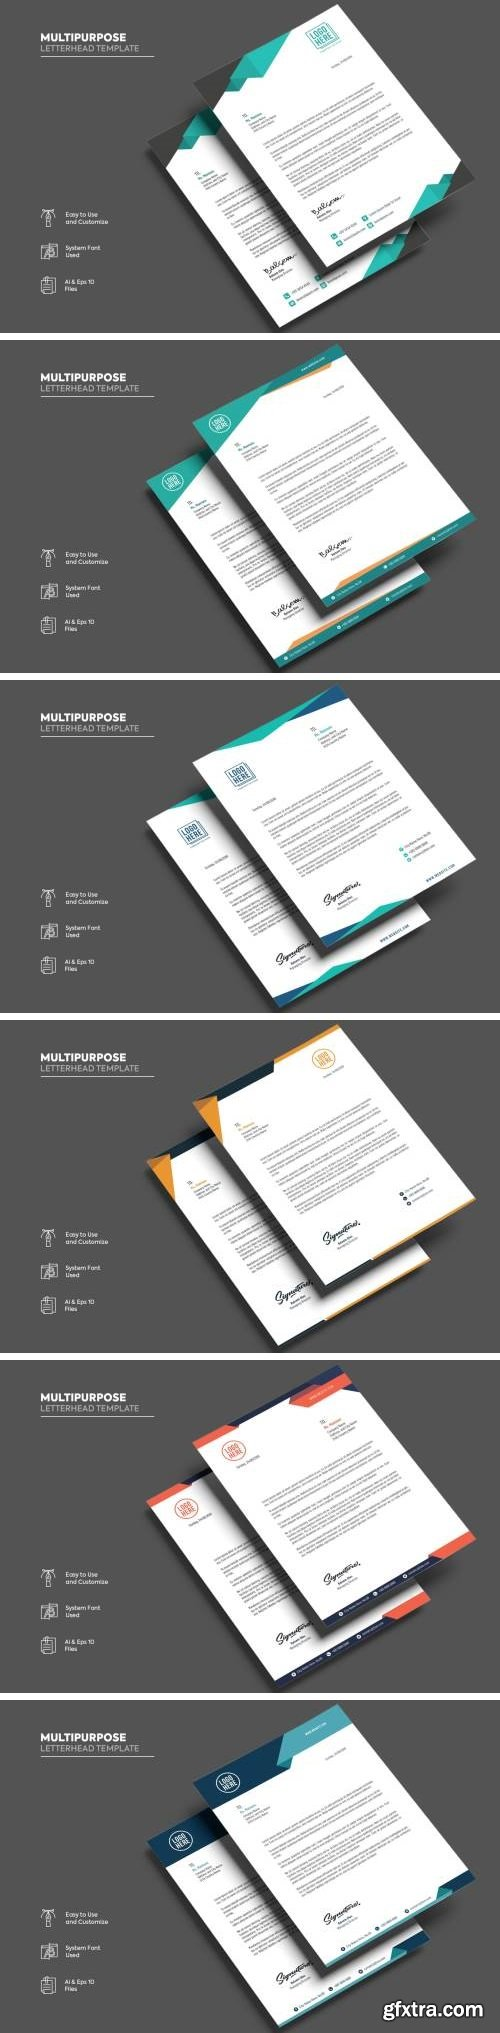 Multipurpose Letterhead Template Bundle